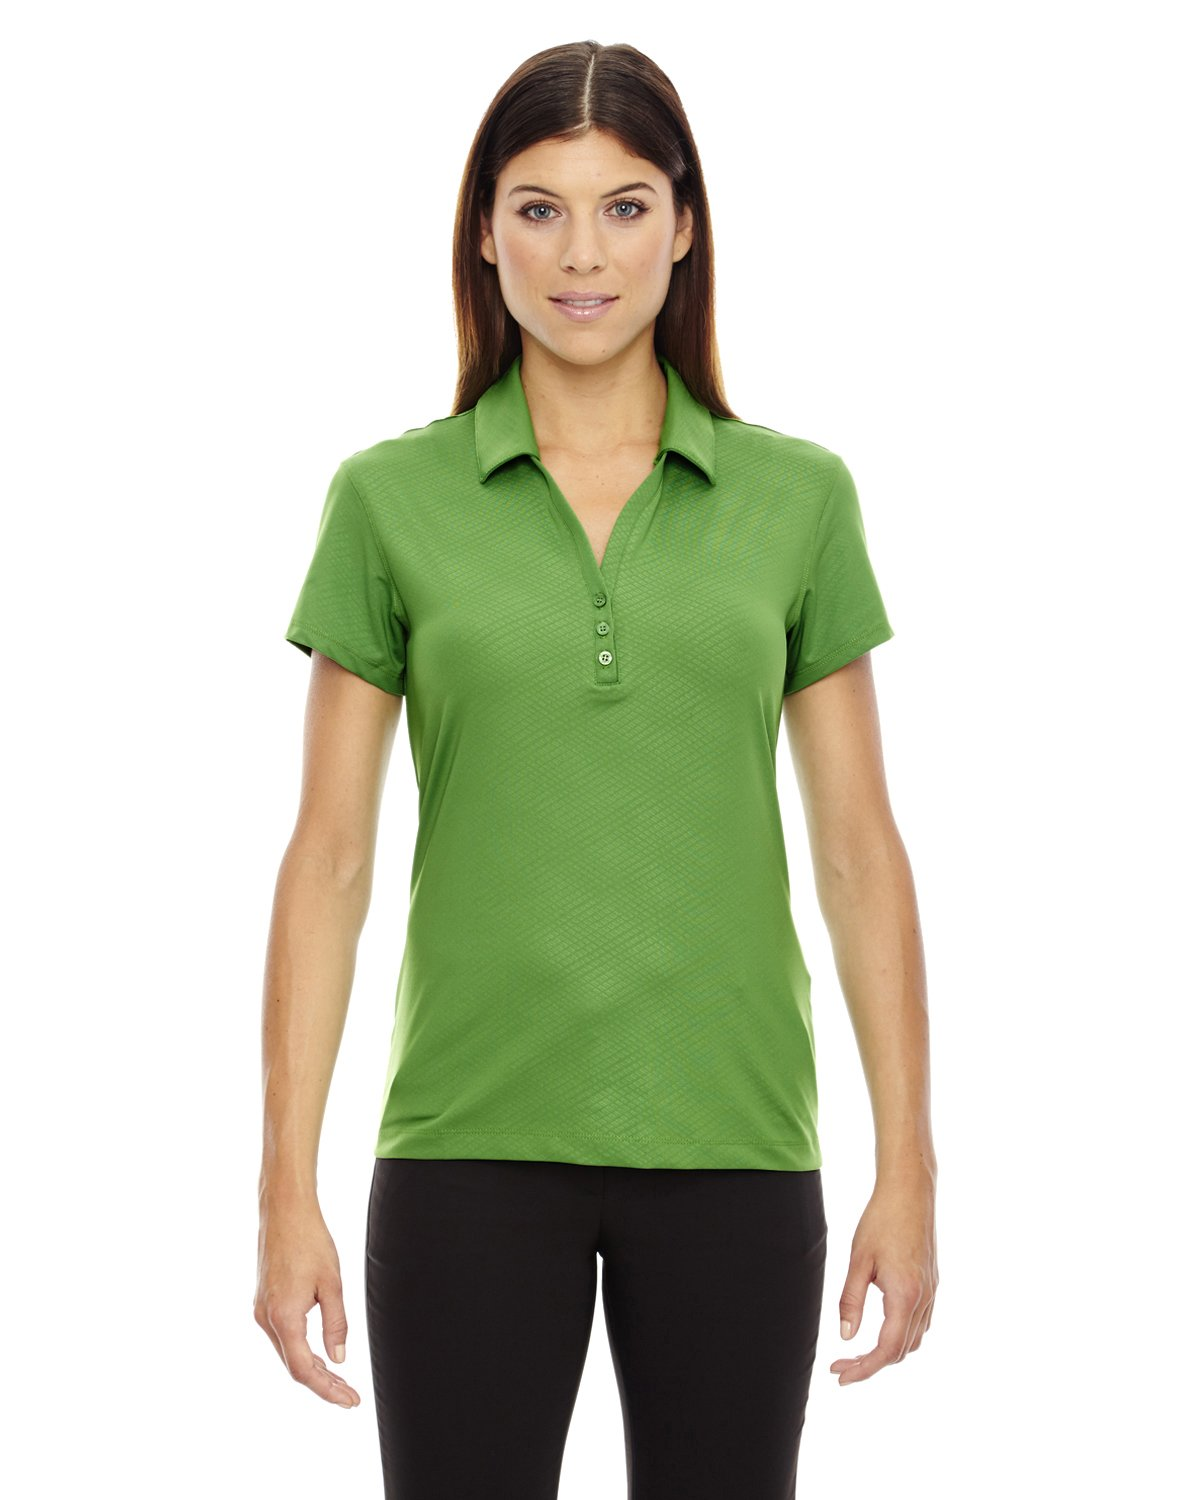 Ash City Ladies Maze Stretch Polo (Medium, Valley Green) by Ash City Apparel